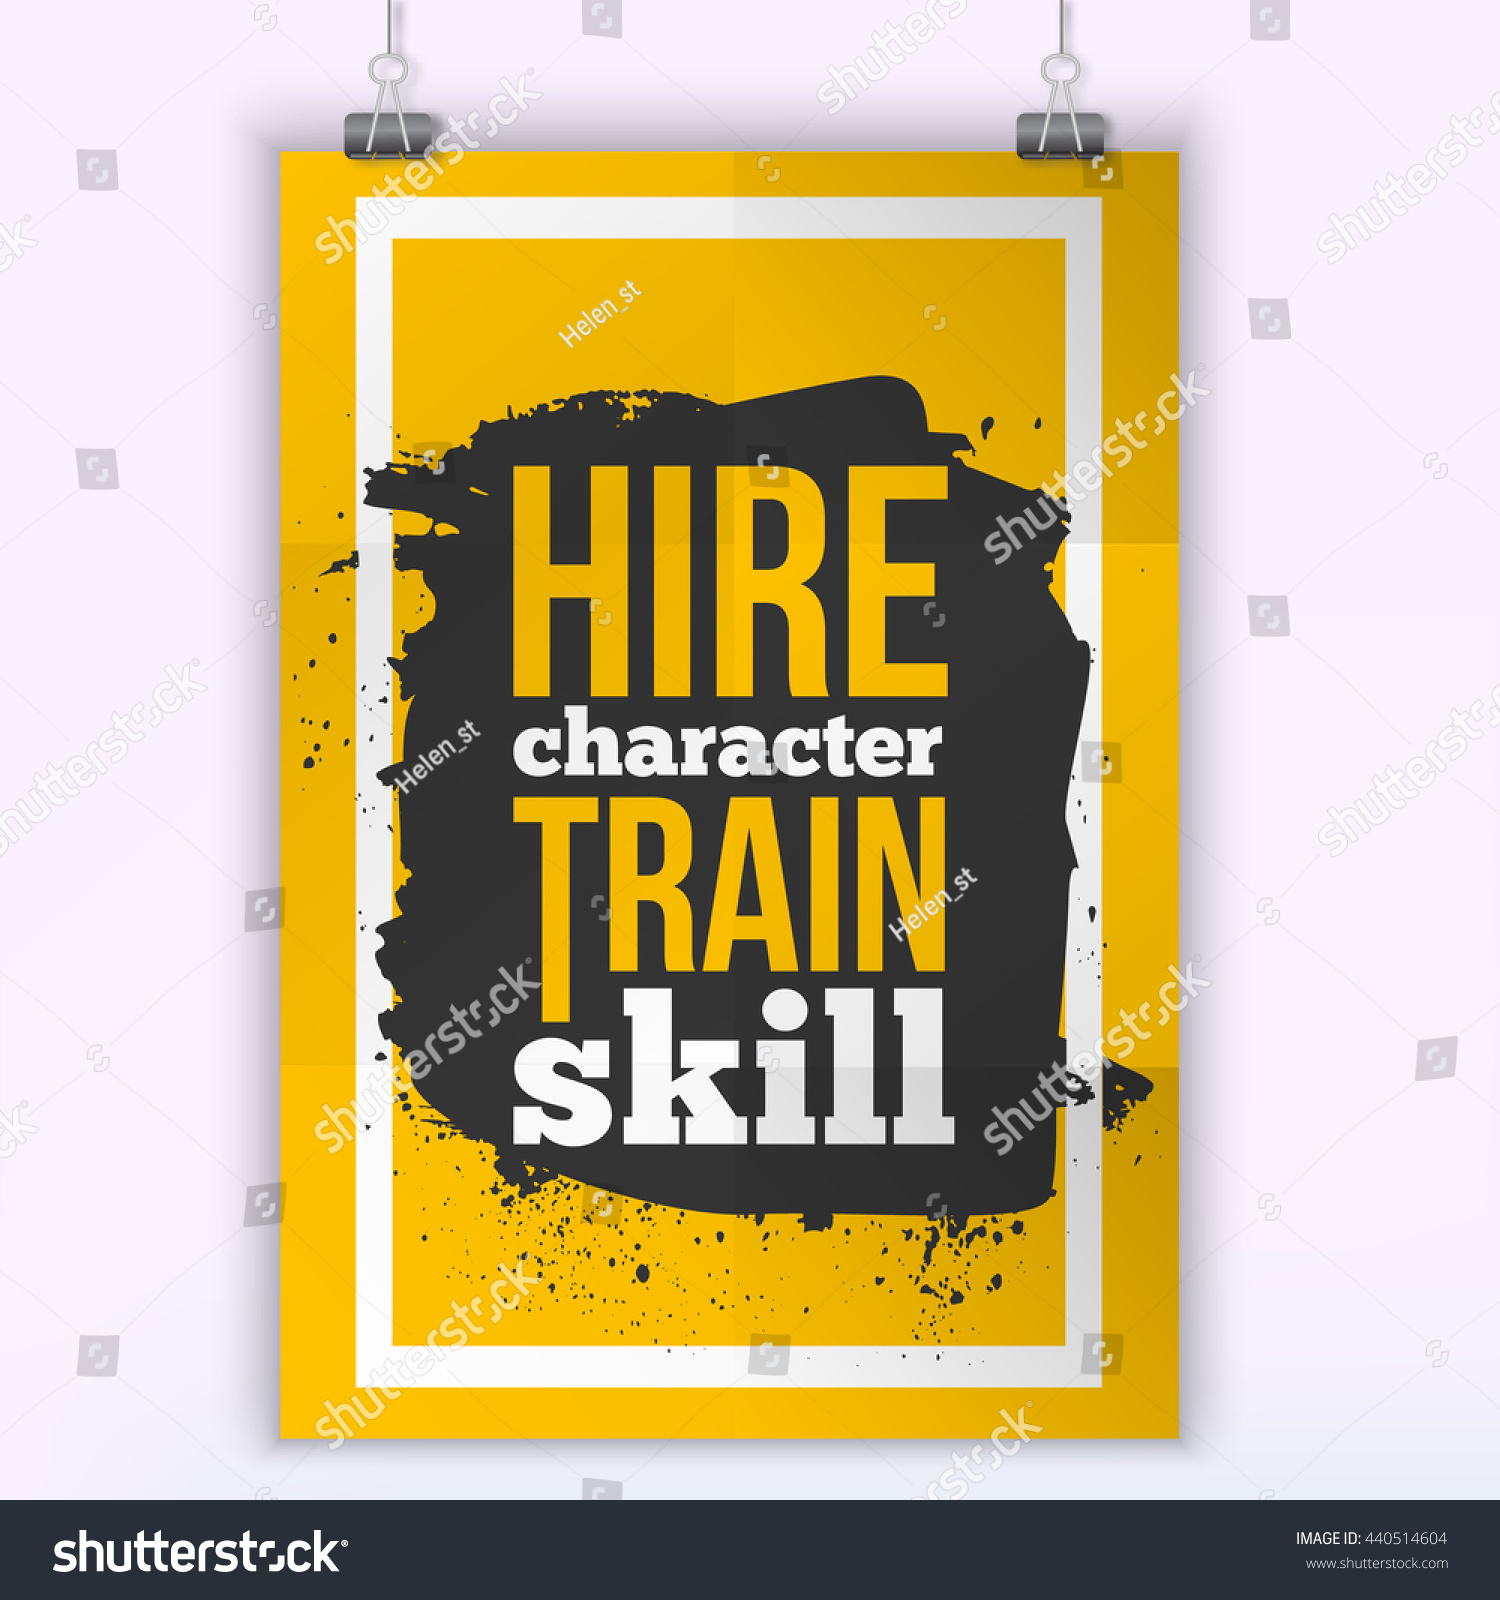 Hire Character Train Skill Quote Wall Stock Vector 440514604 ...